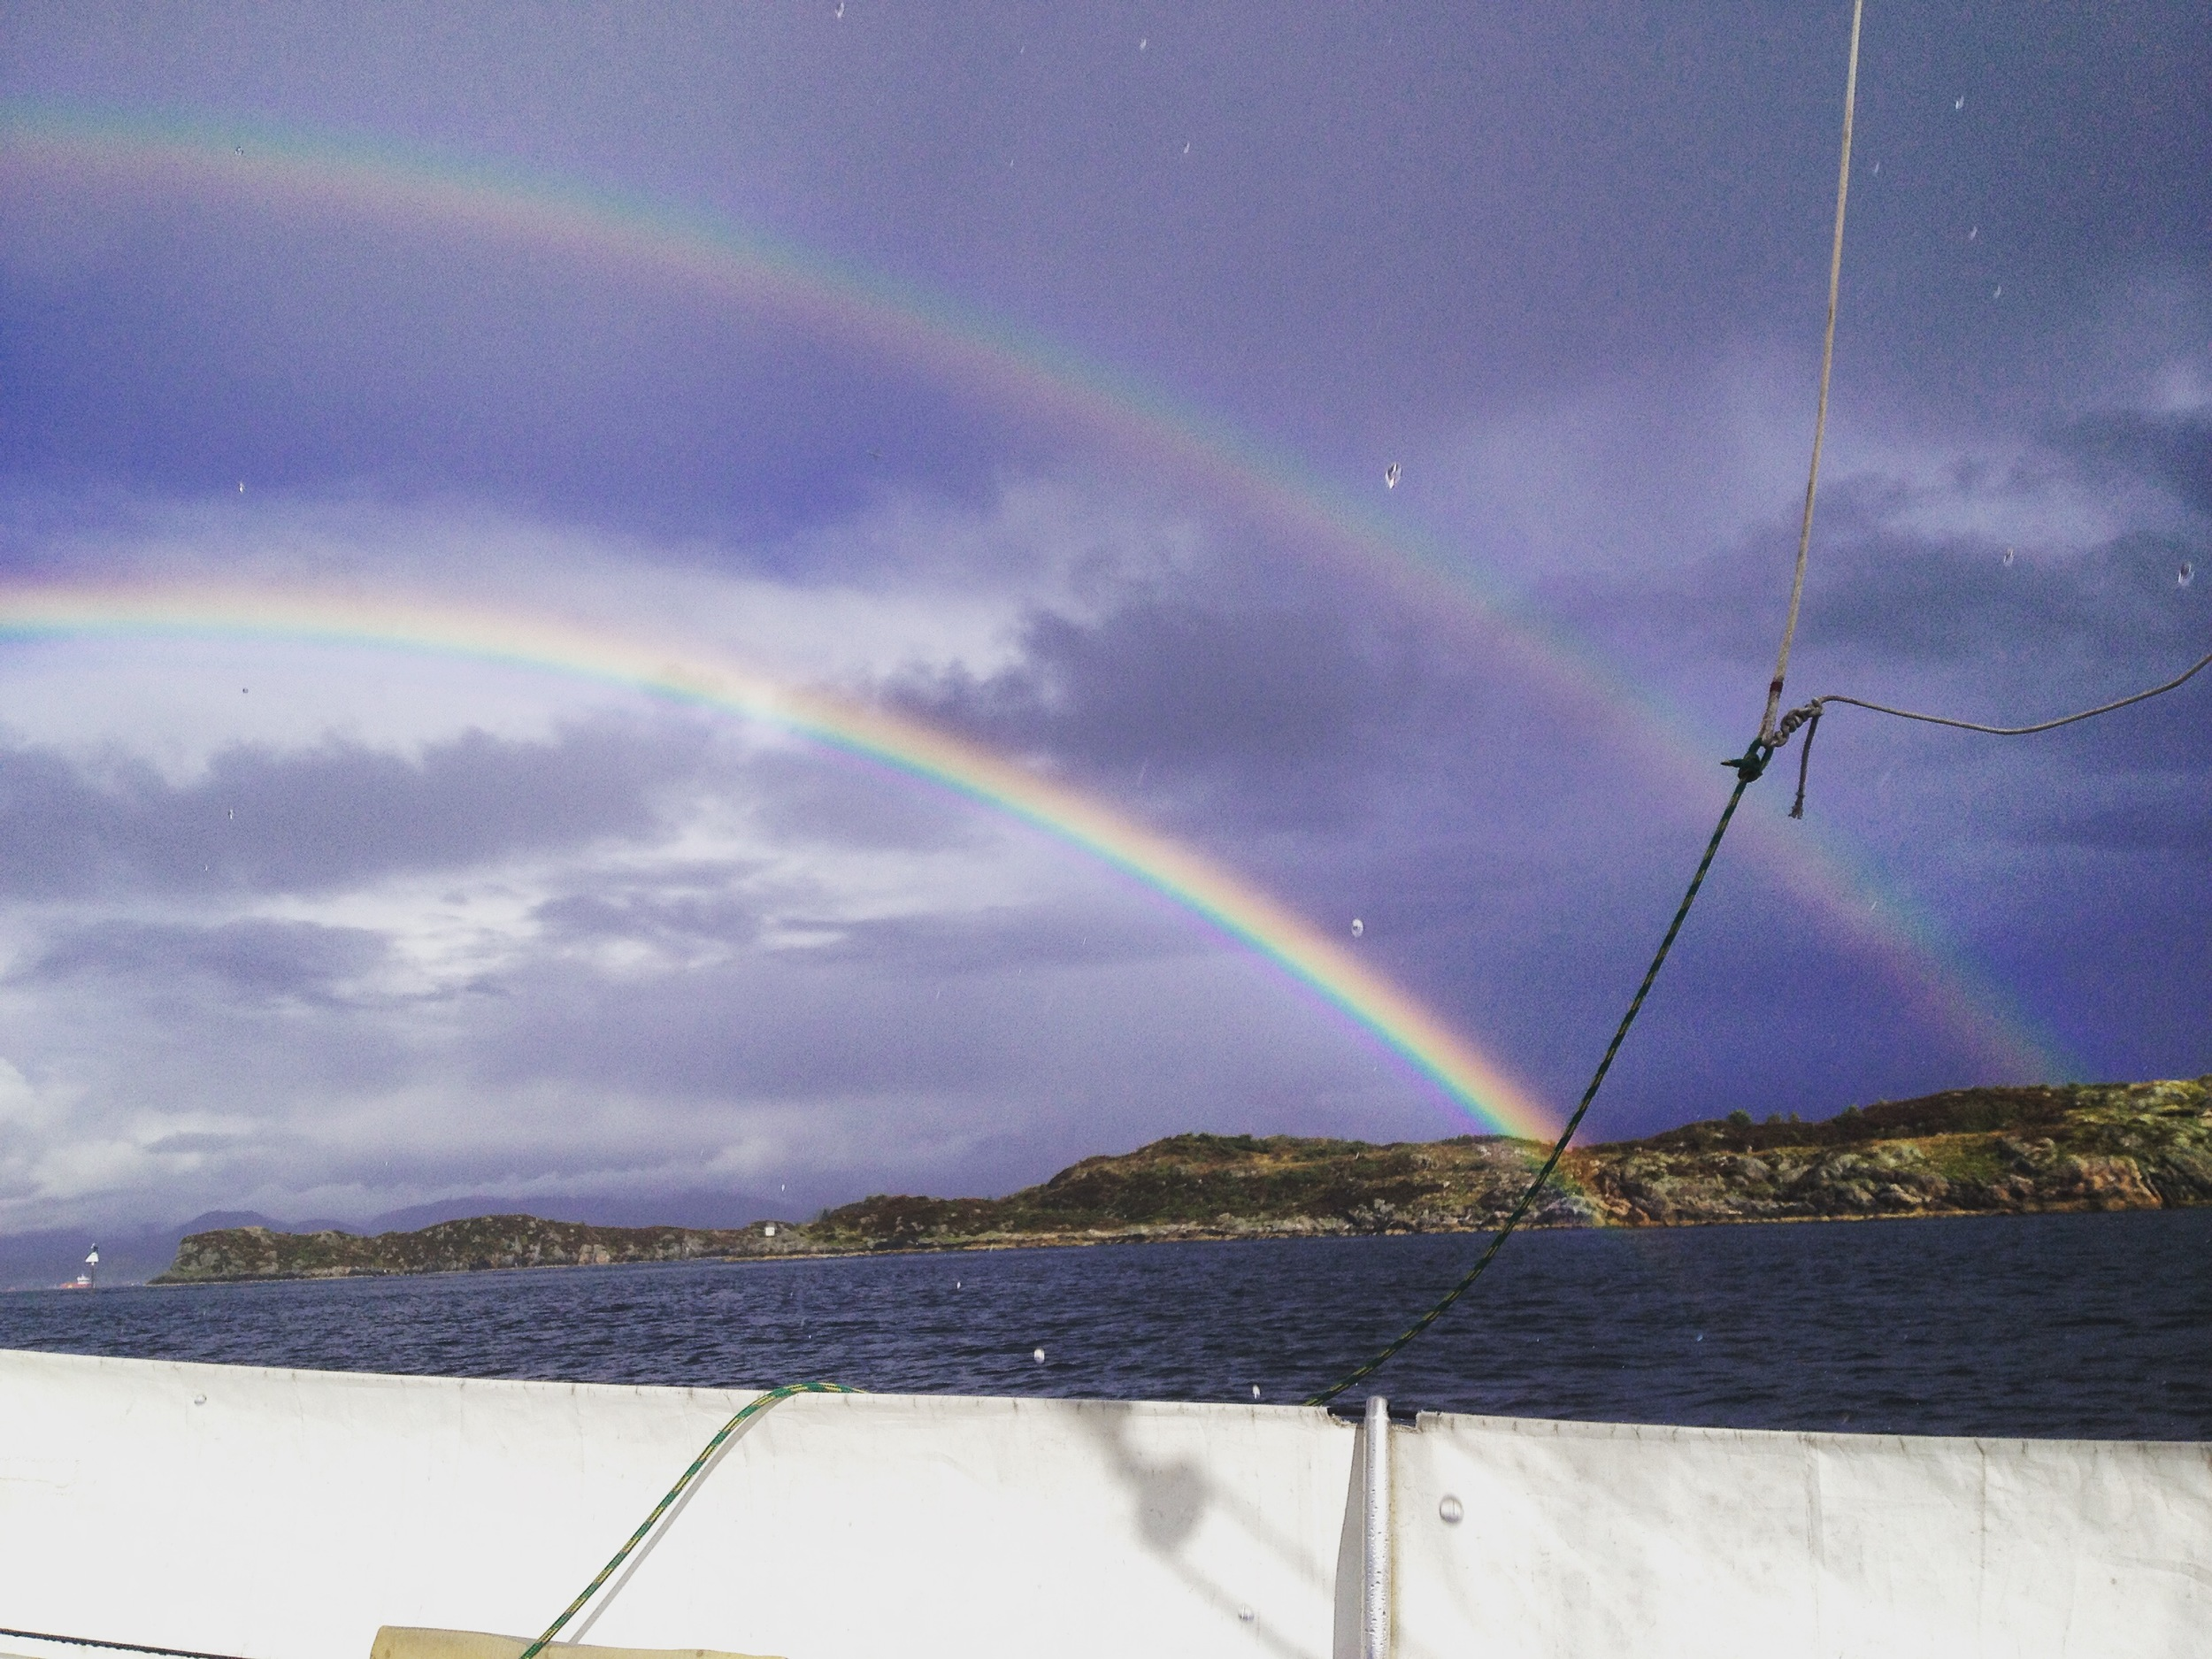 First time seeing a double rainbow